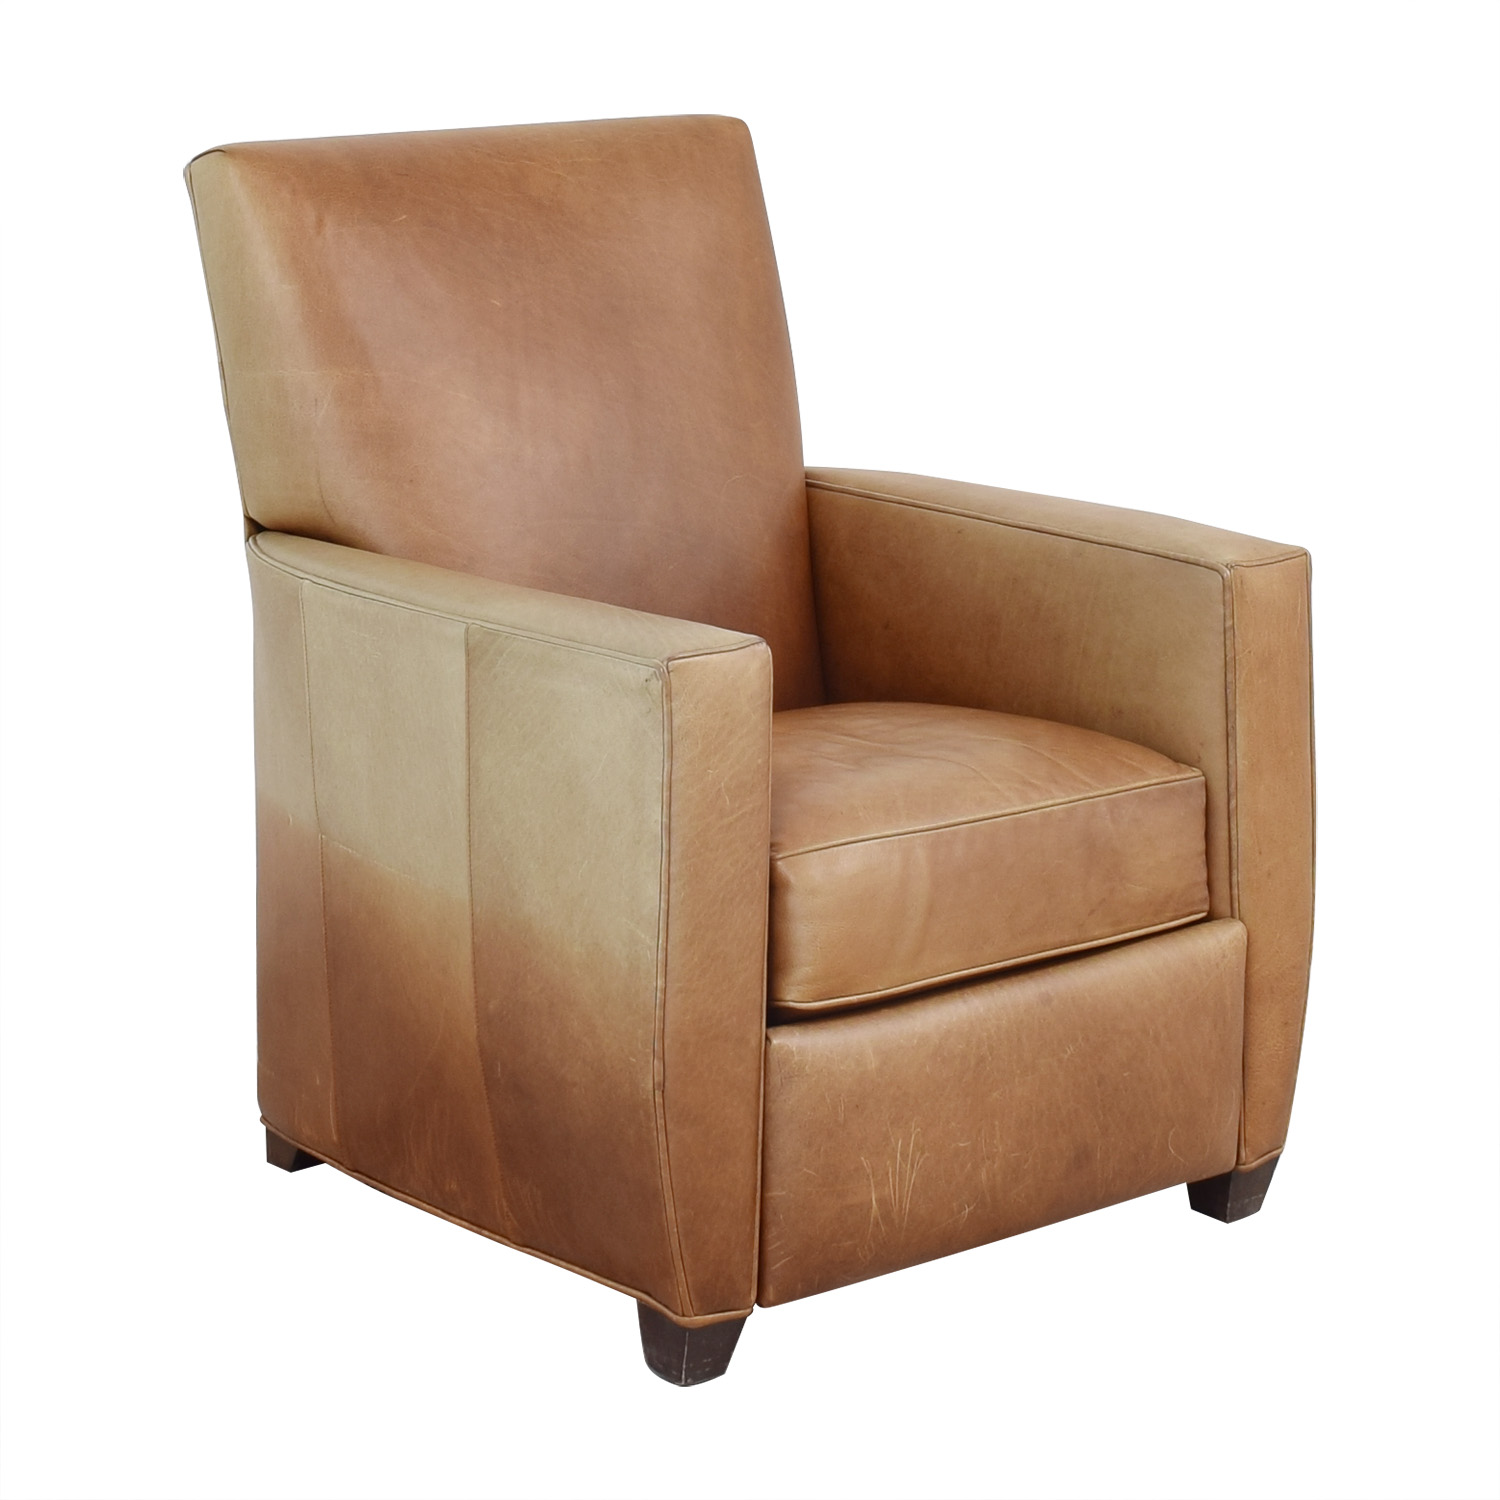 Crate & Barrel Reclining Club Chair / Chairs